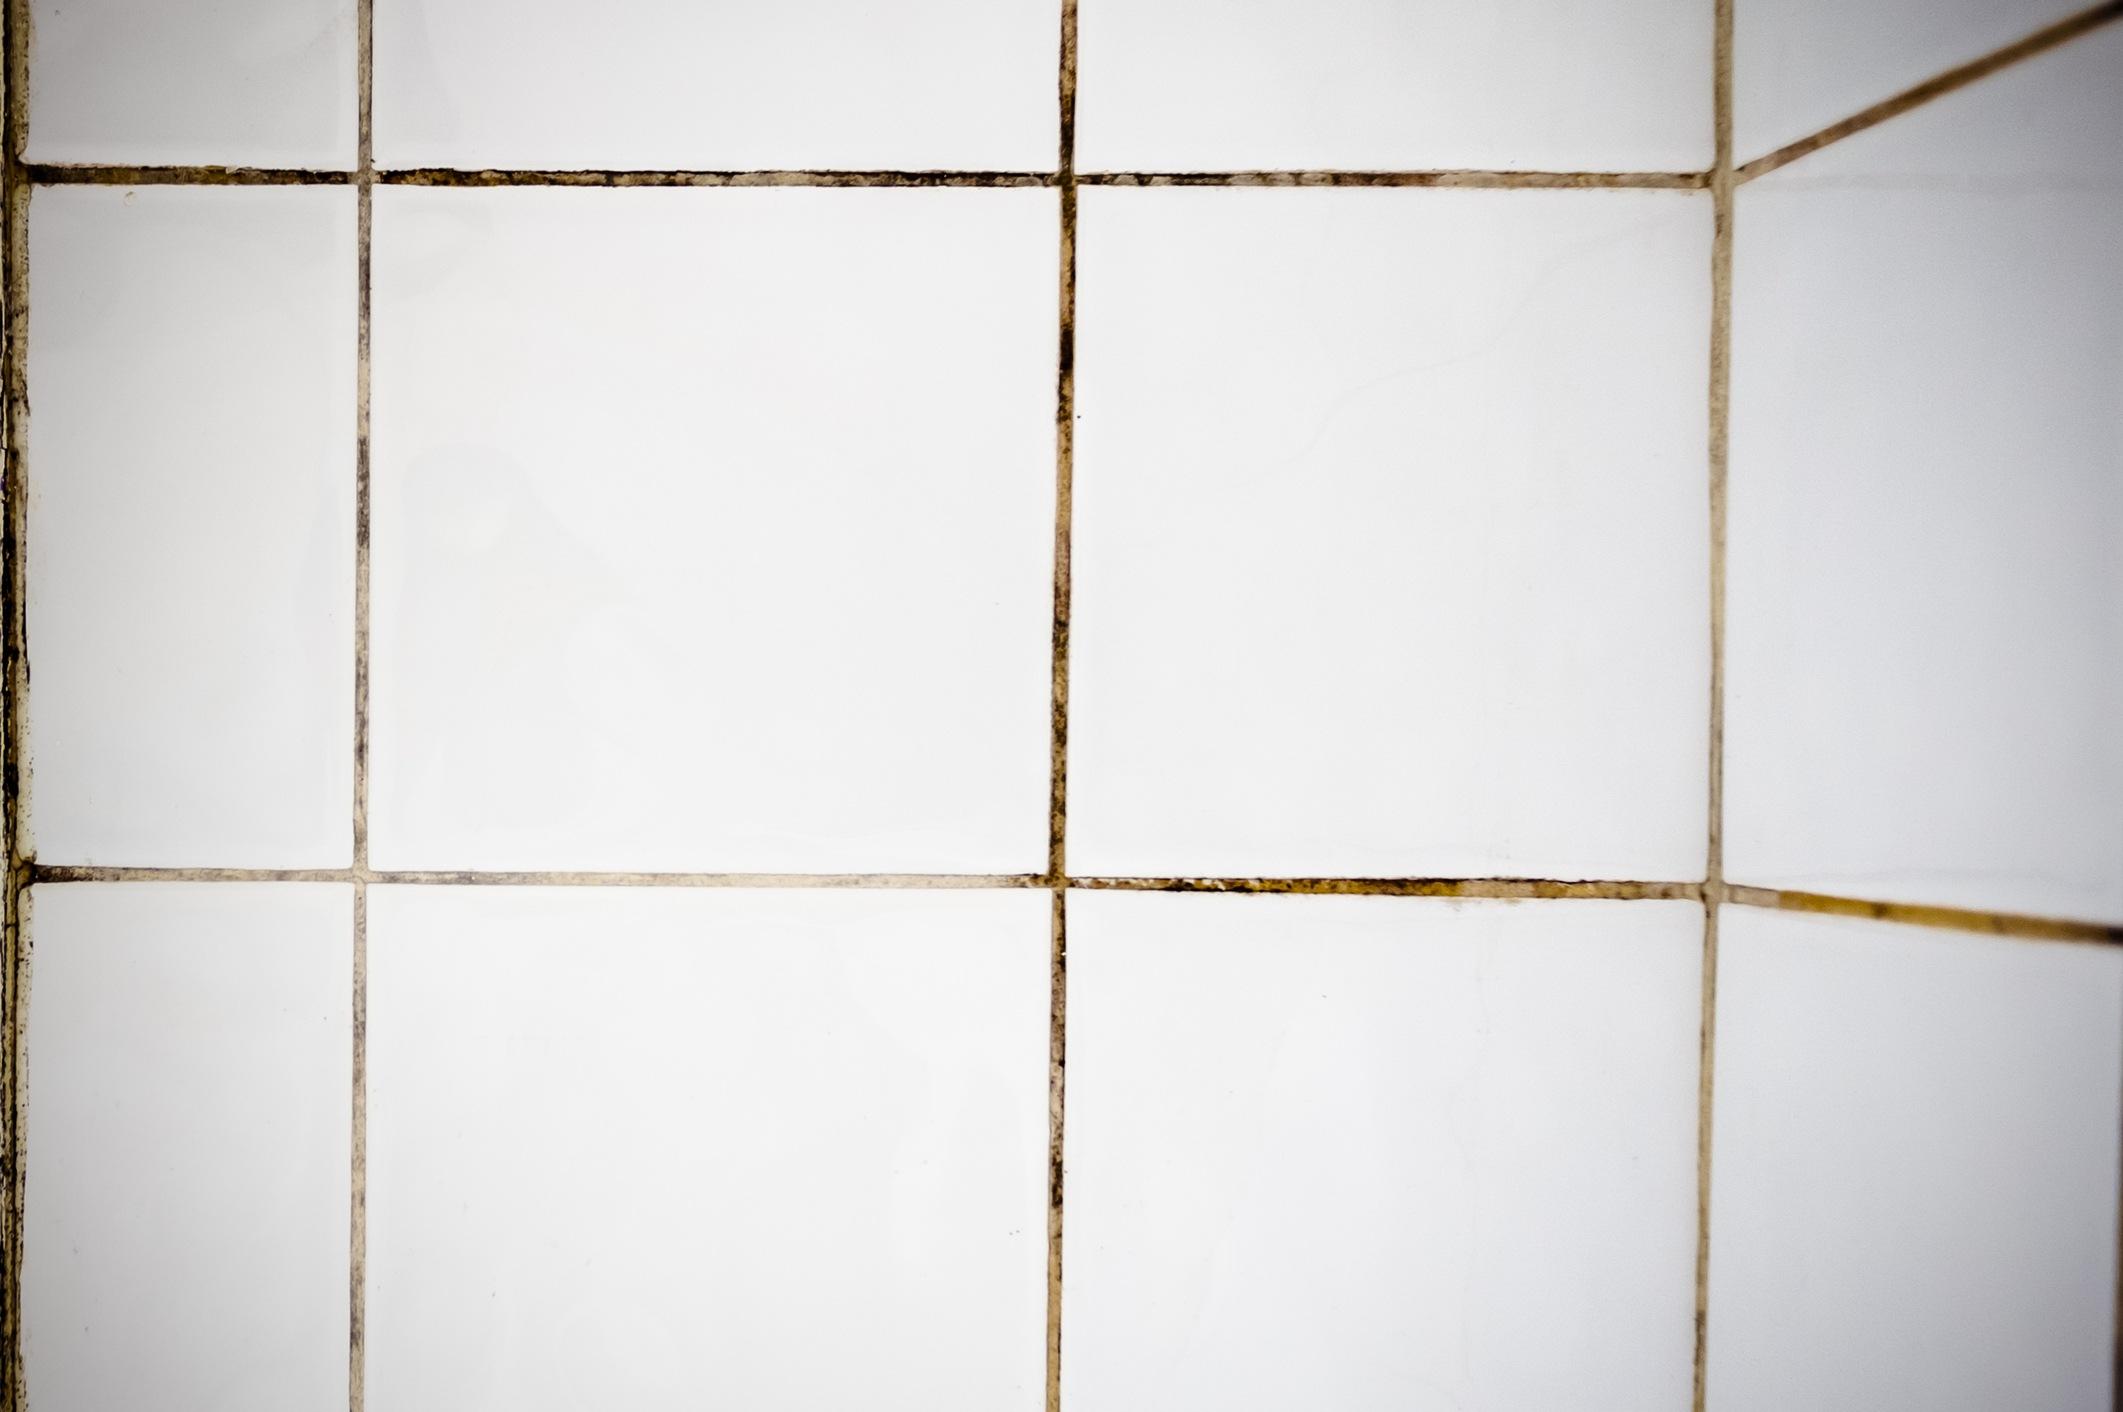 How to Clean Your Bathroom Tiles | Len The Plumber